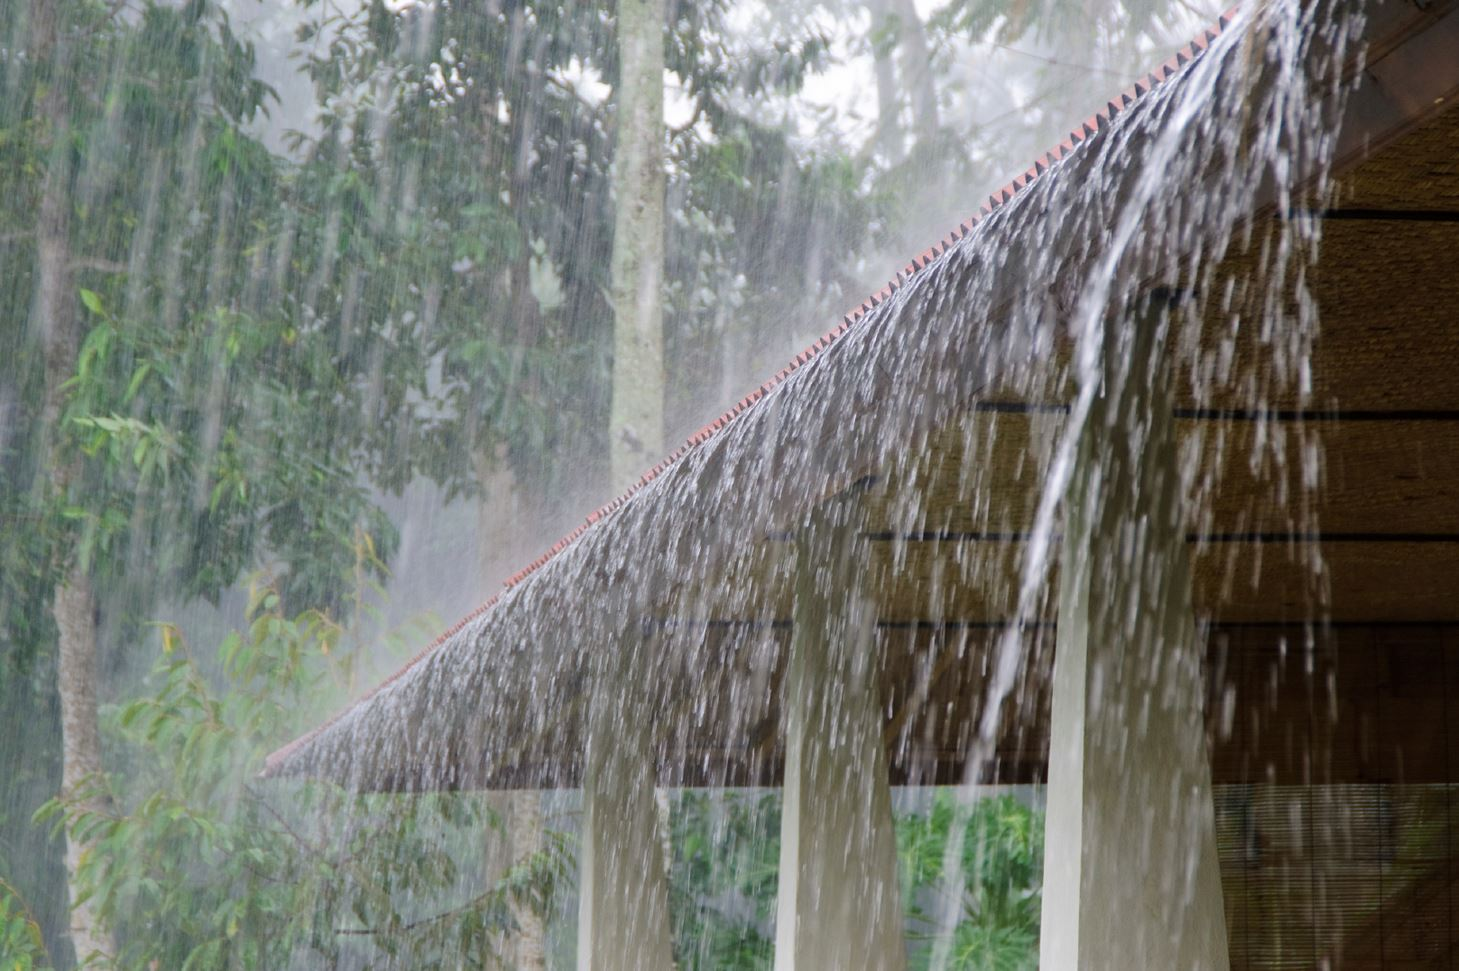 Natural Disasters How To Protect Your Home From Bad